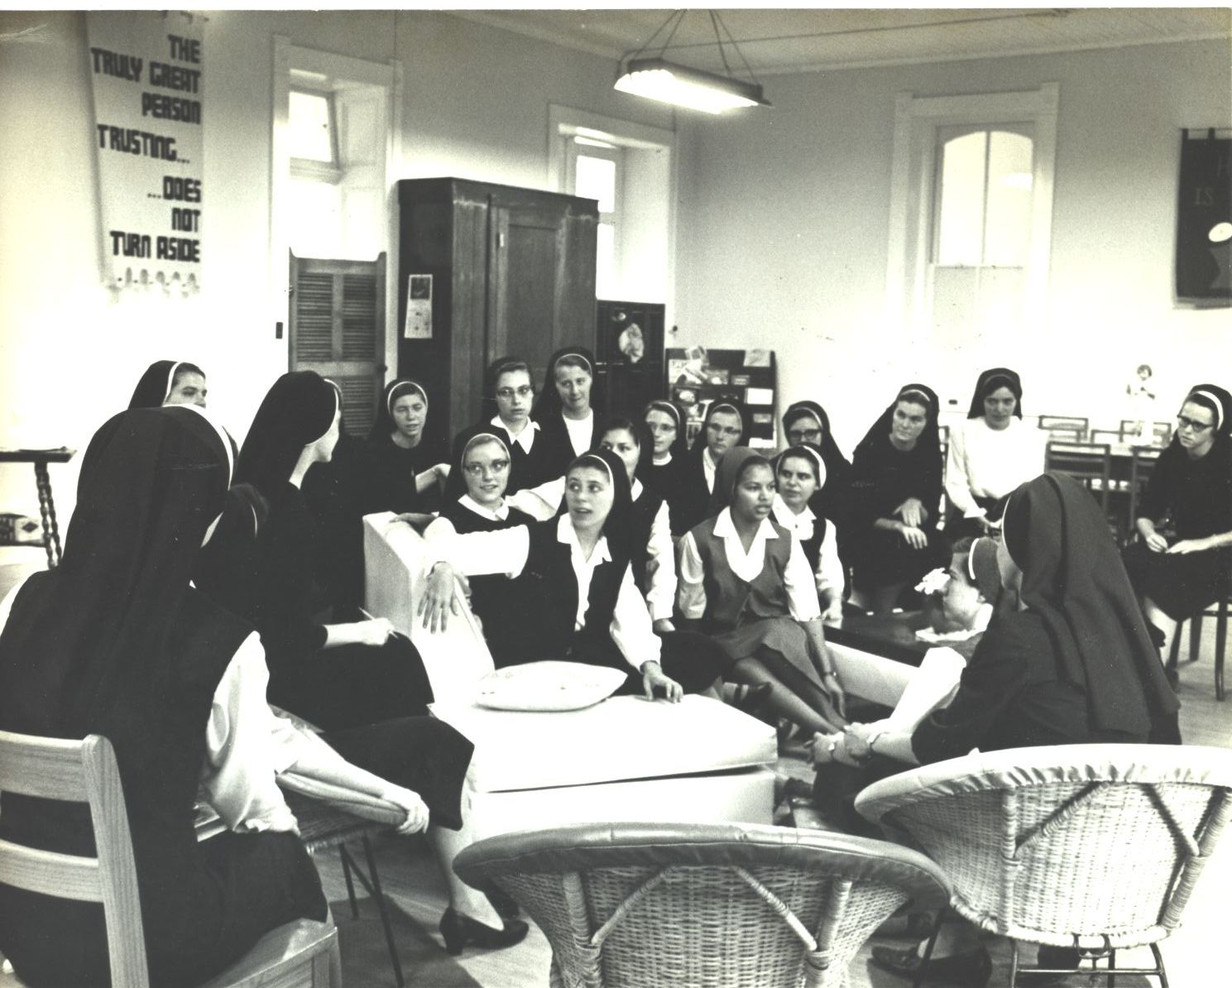 """The Vatican II Council, held in Rome from 1962 to 1965, called men and women religious to """"look at the signs of the times"""" and """"renew"""" their way of living. """"We did a lot of praying and talking, but we learned to communicate honestly and truthfully with one another"""" (Sr. Eleanor Cohan)."""